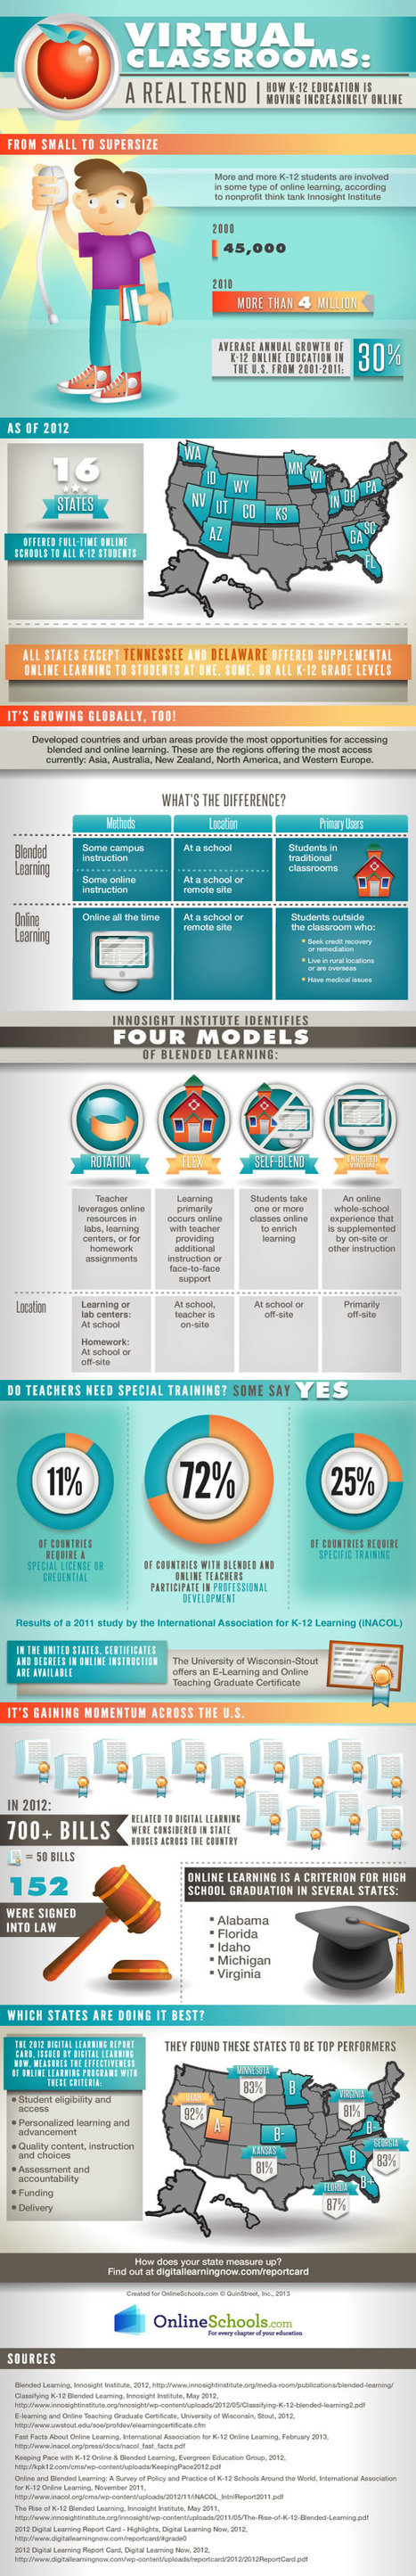 The Teacher's Quick Guide To Blended Learning [Infographic] | Estratégias de e-learning | Scoop.it